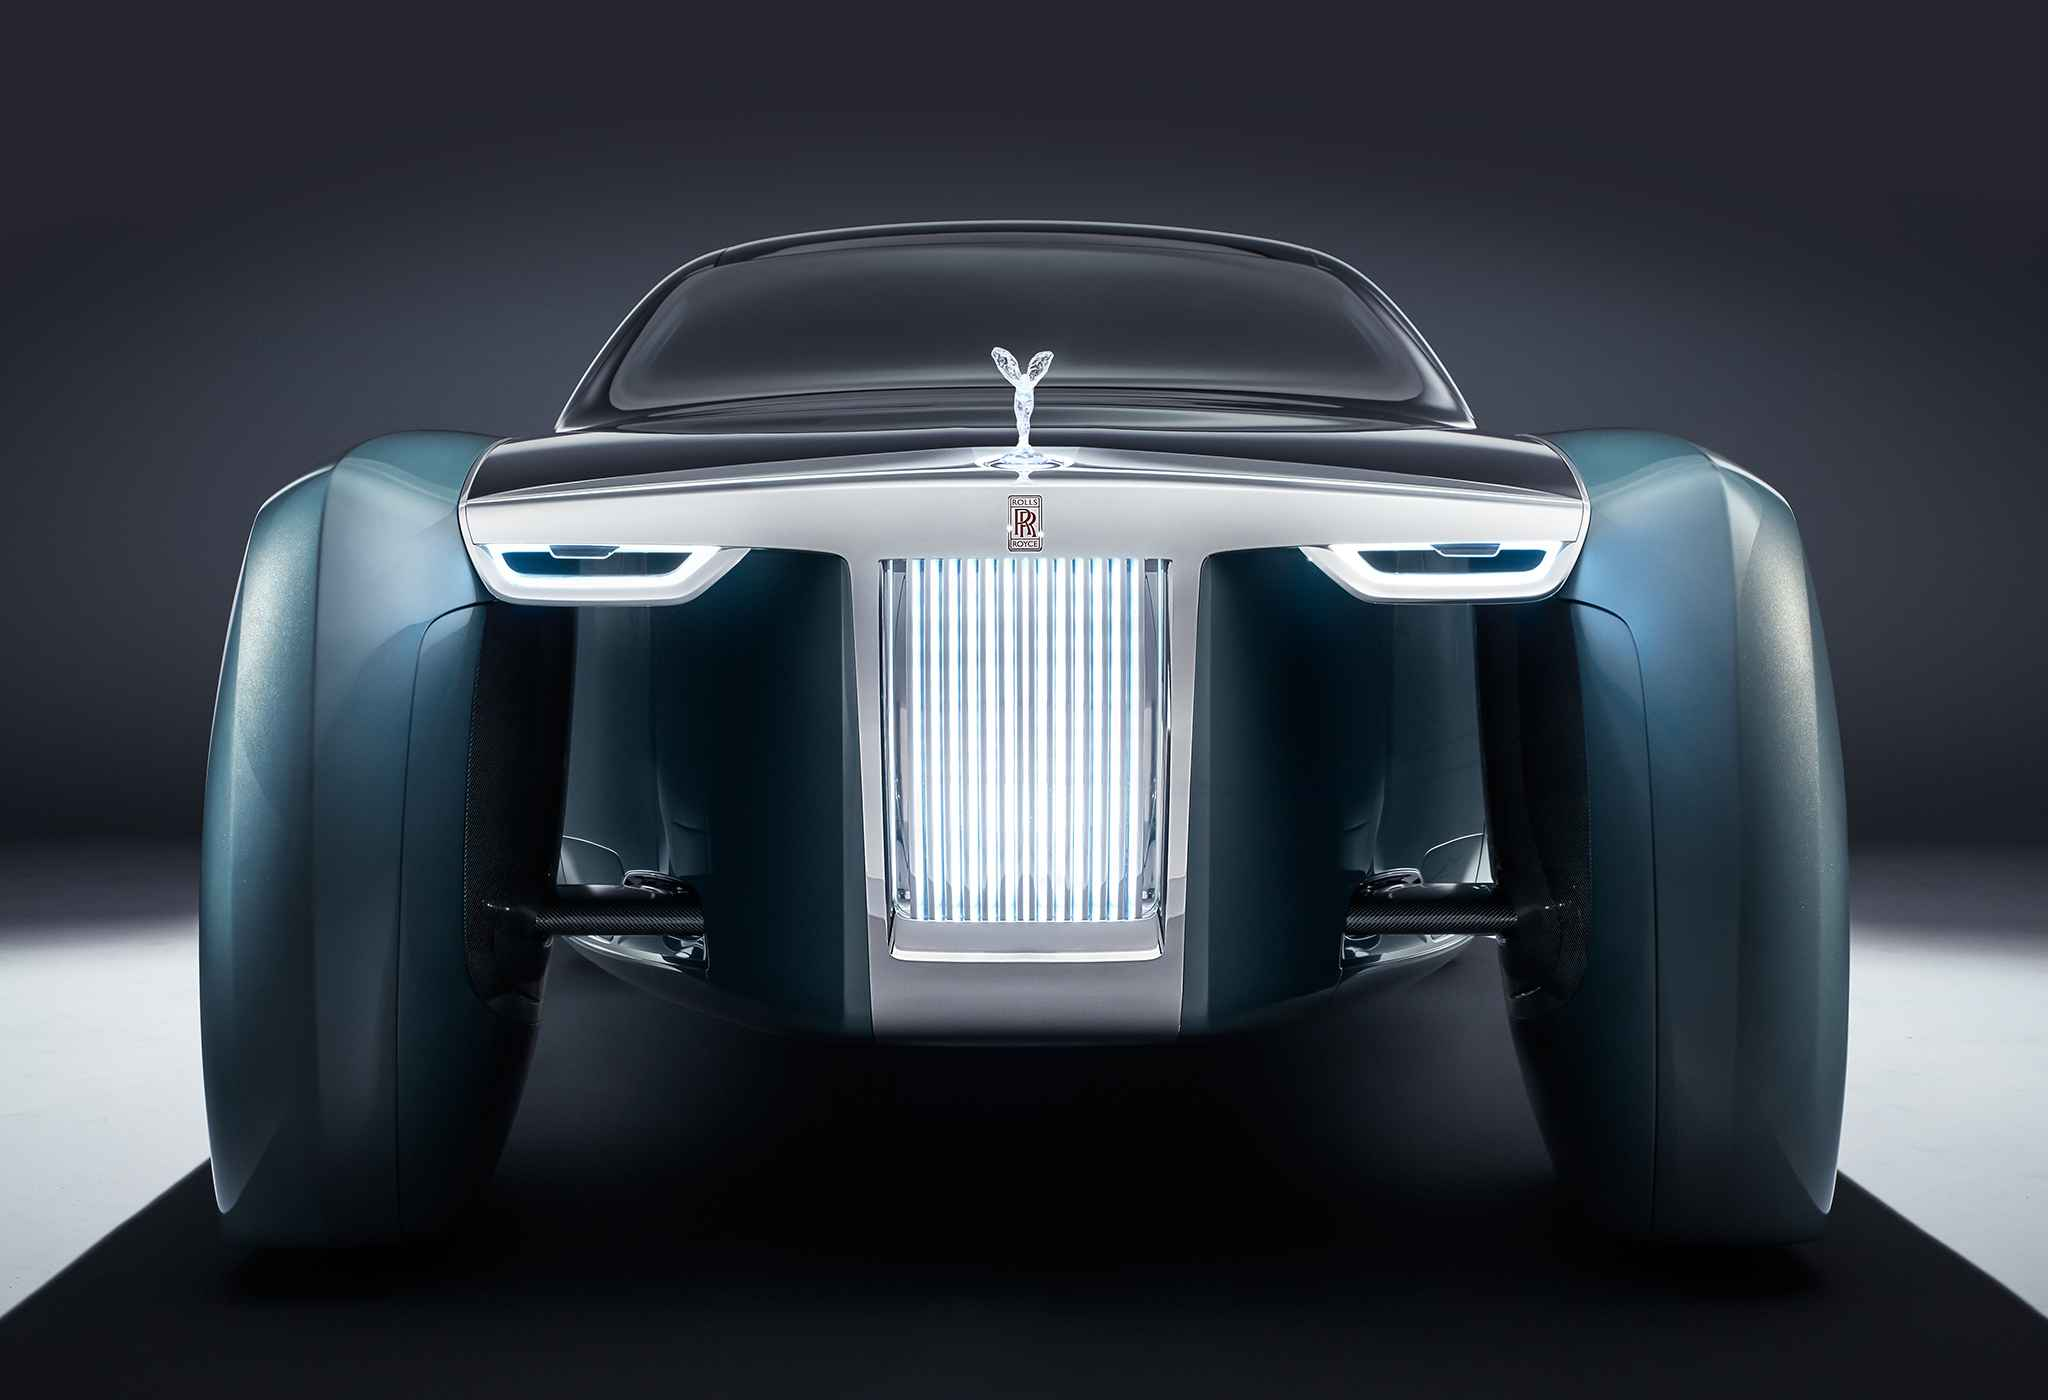 rolls royce wants to 3d print the interieur for their vision 100 3printrcom